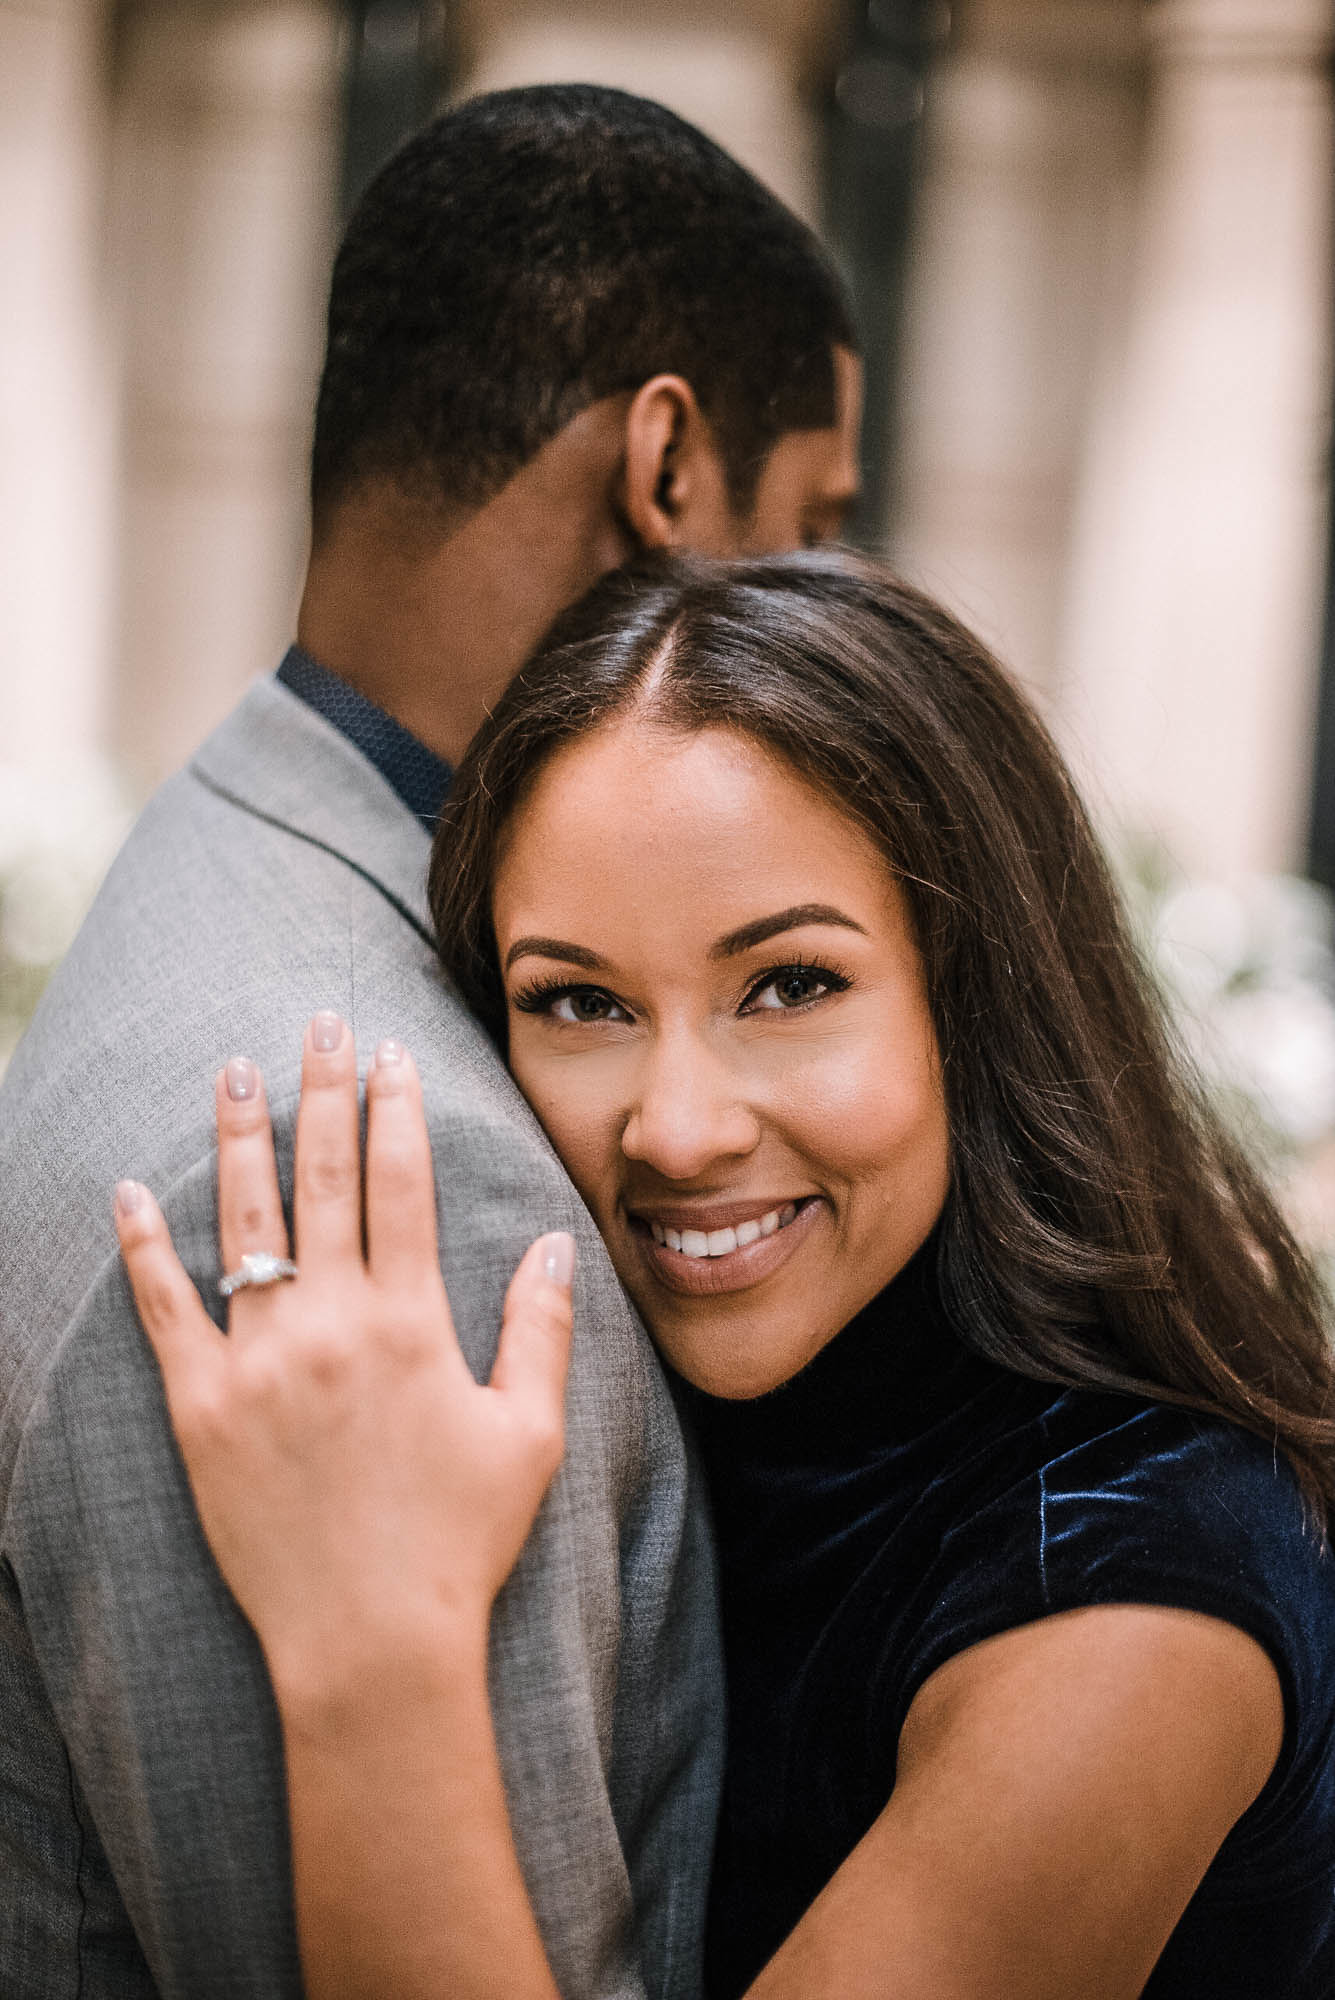 Girl with engagement ring smiling hugging man